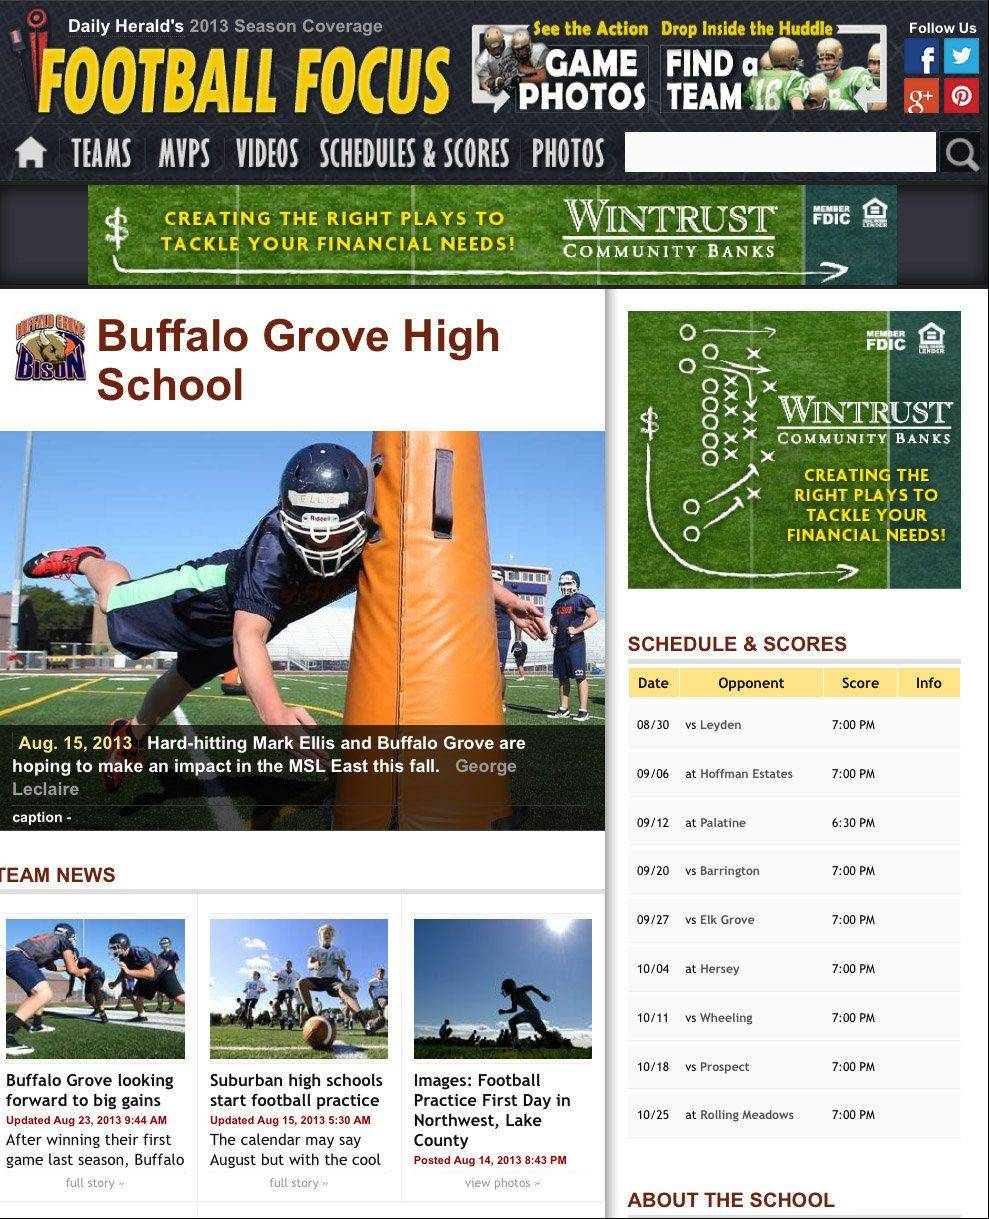 Daily Herald's Football Focus 2013